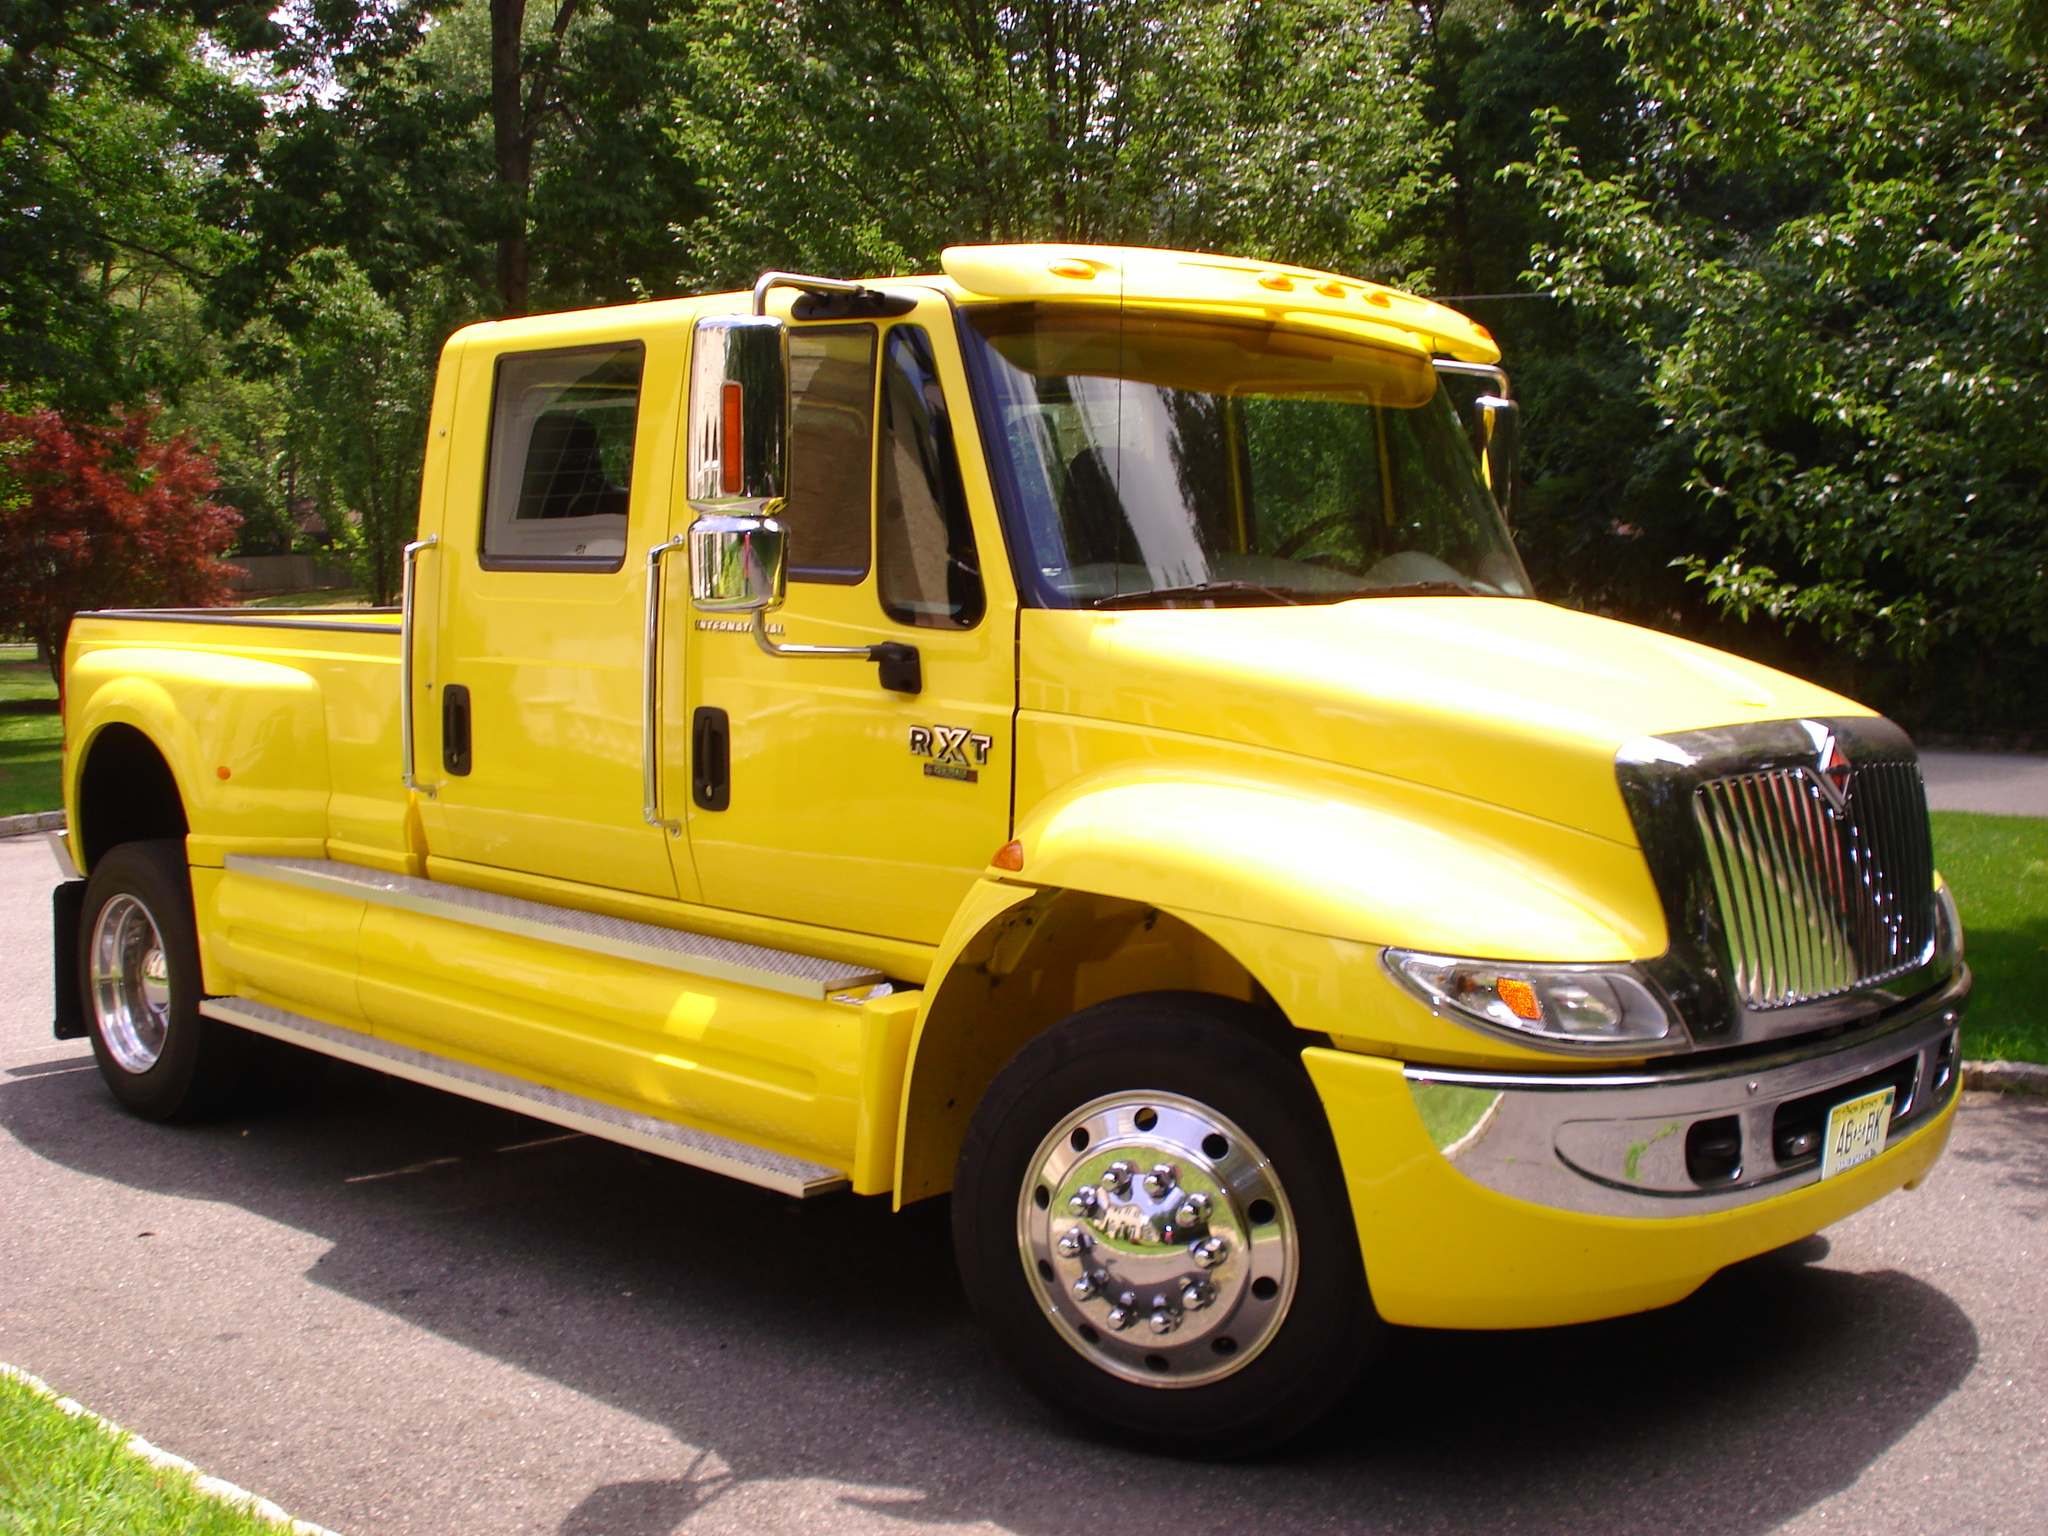 International Cxt Price >> 2007 International Rxt Medium Duty Trucks Pick Up Truck For Sale In